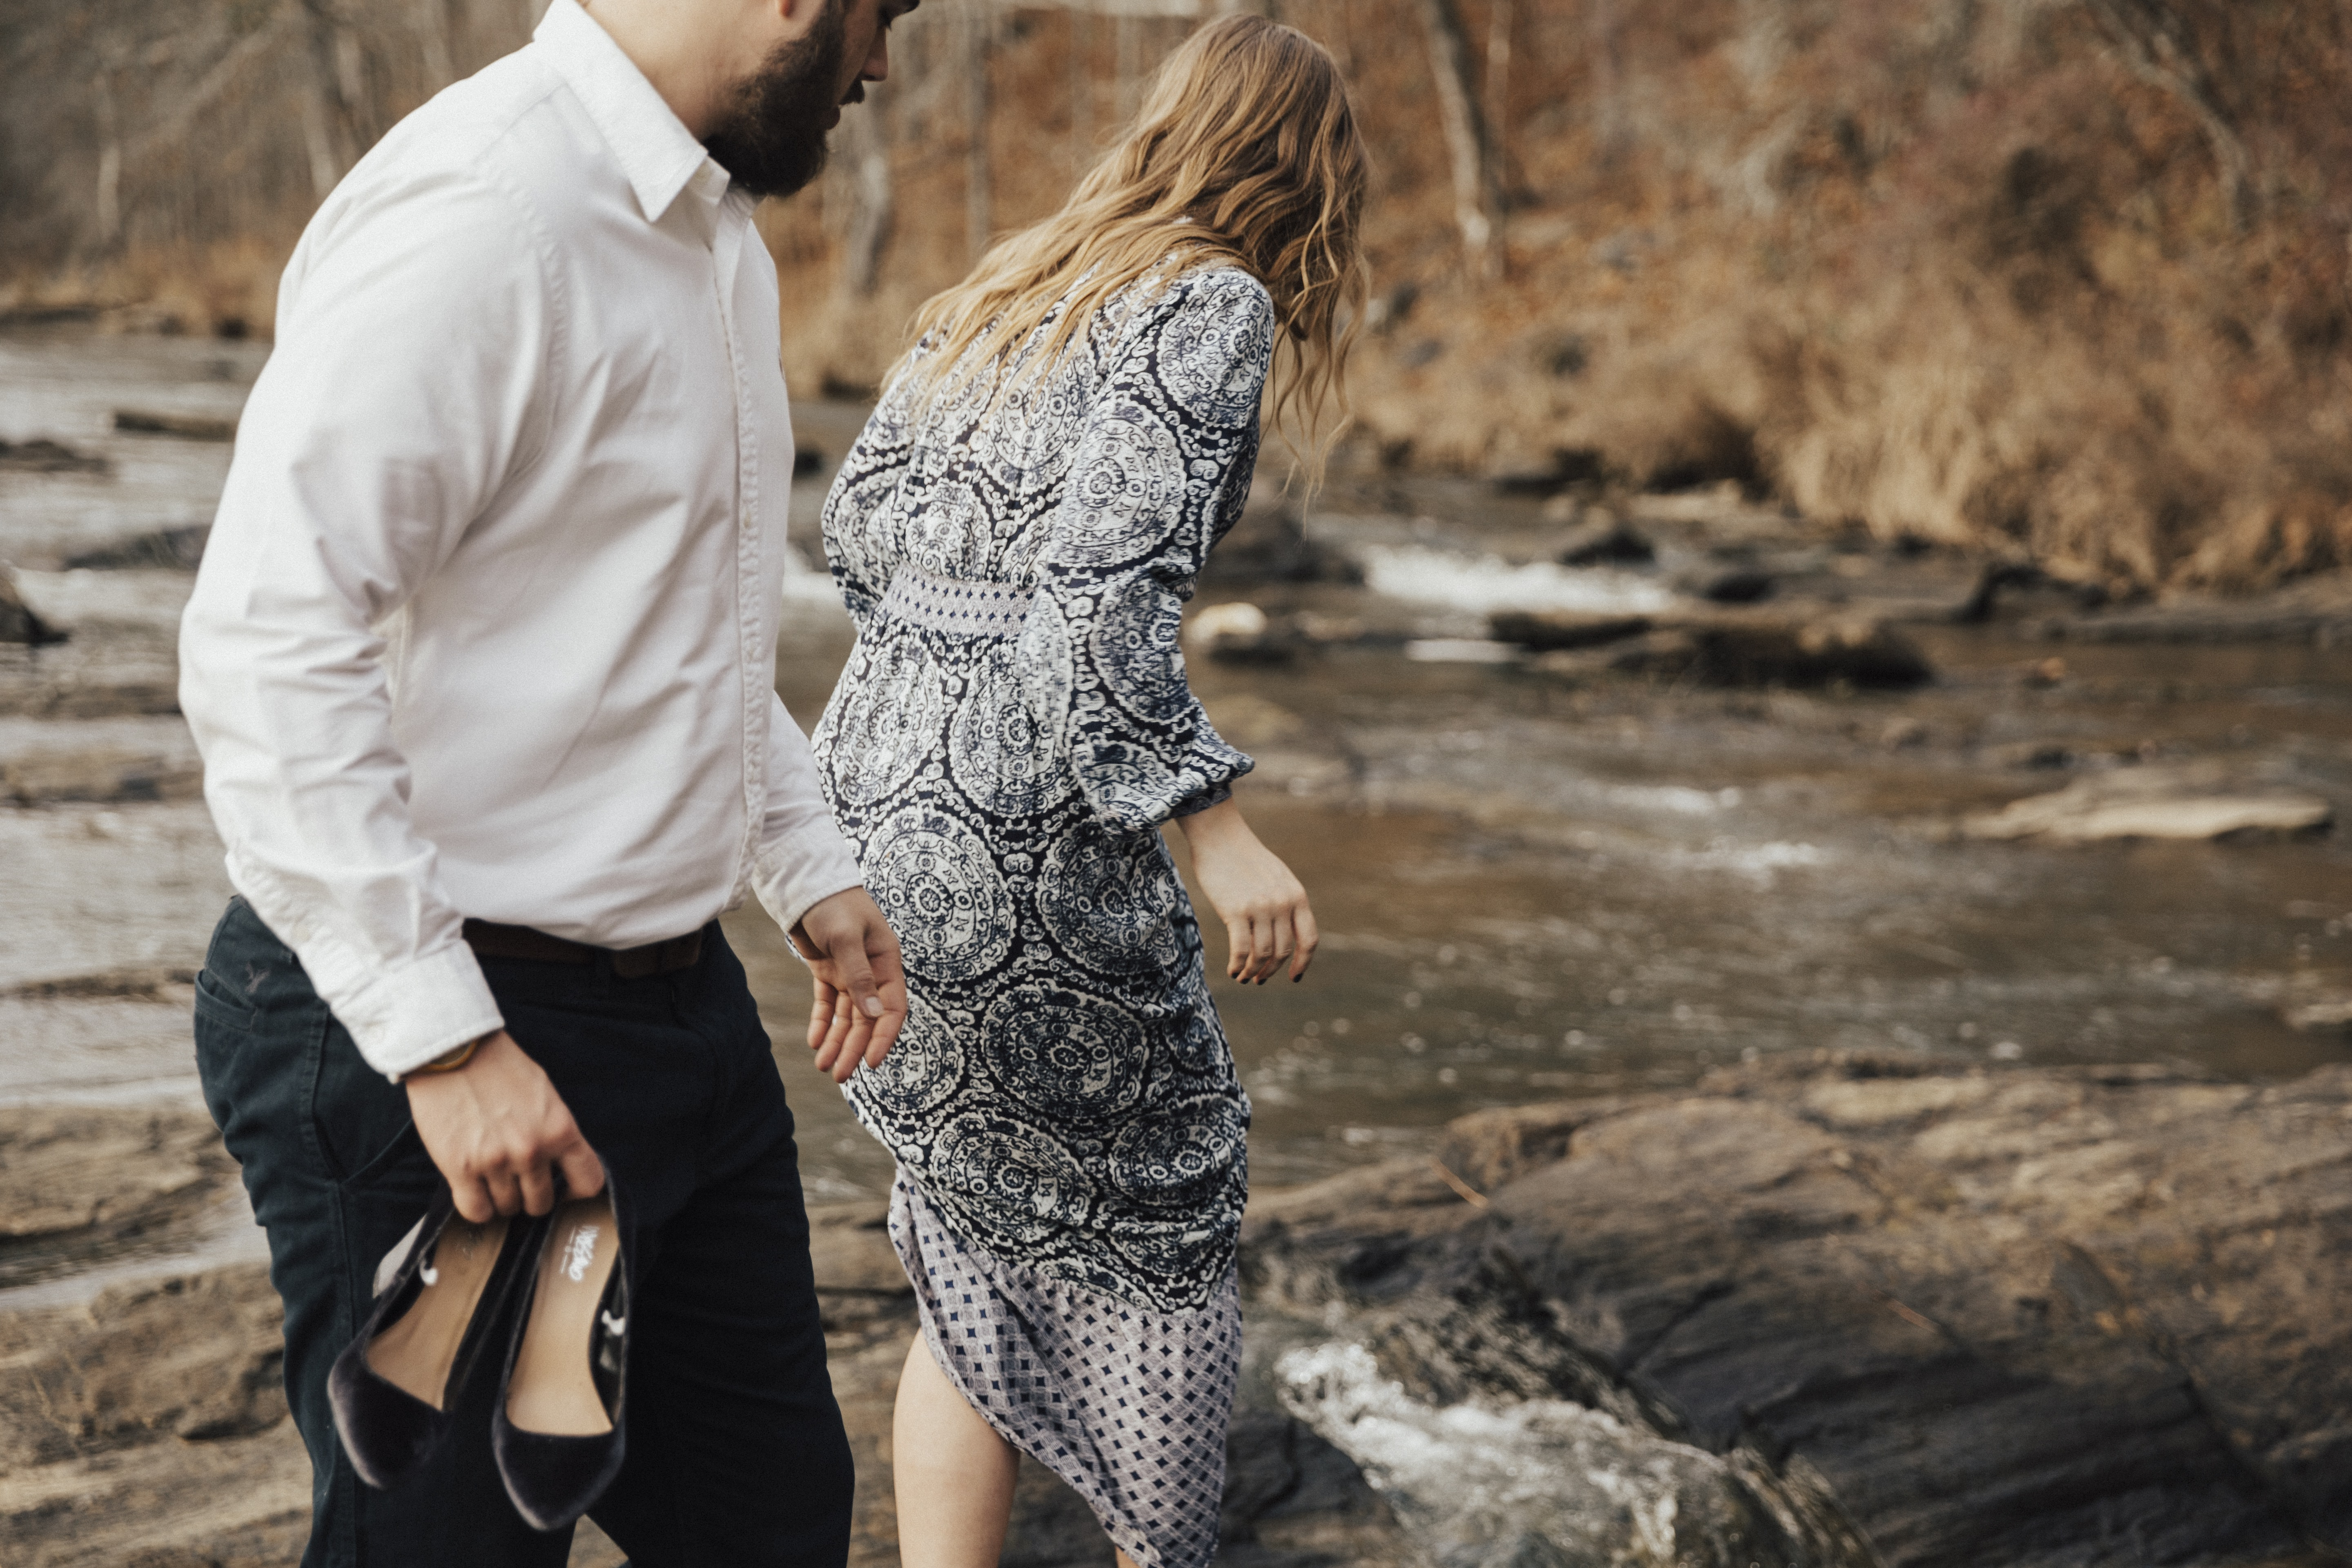 A couple in formal clothing removes their shoes to wade in a rocky stream